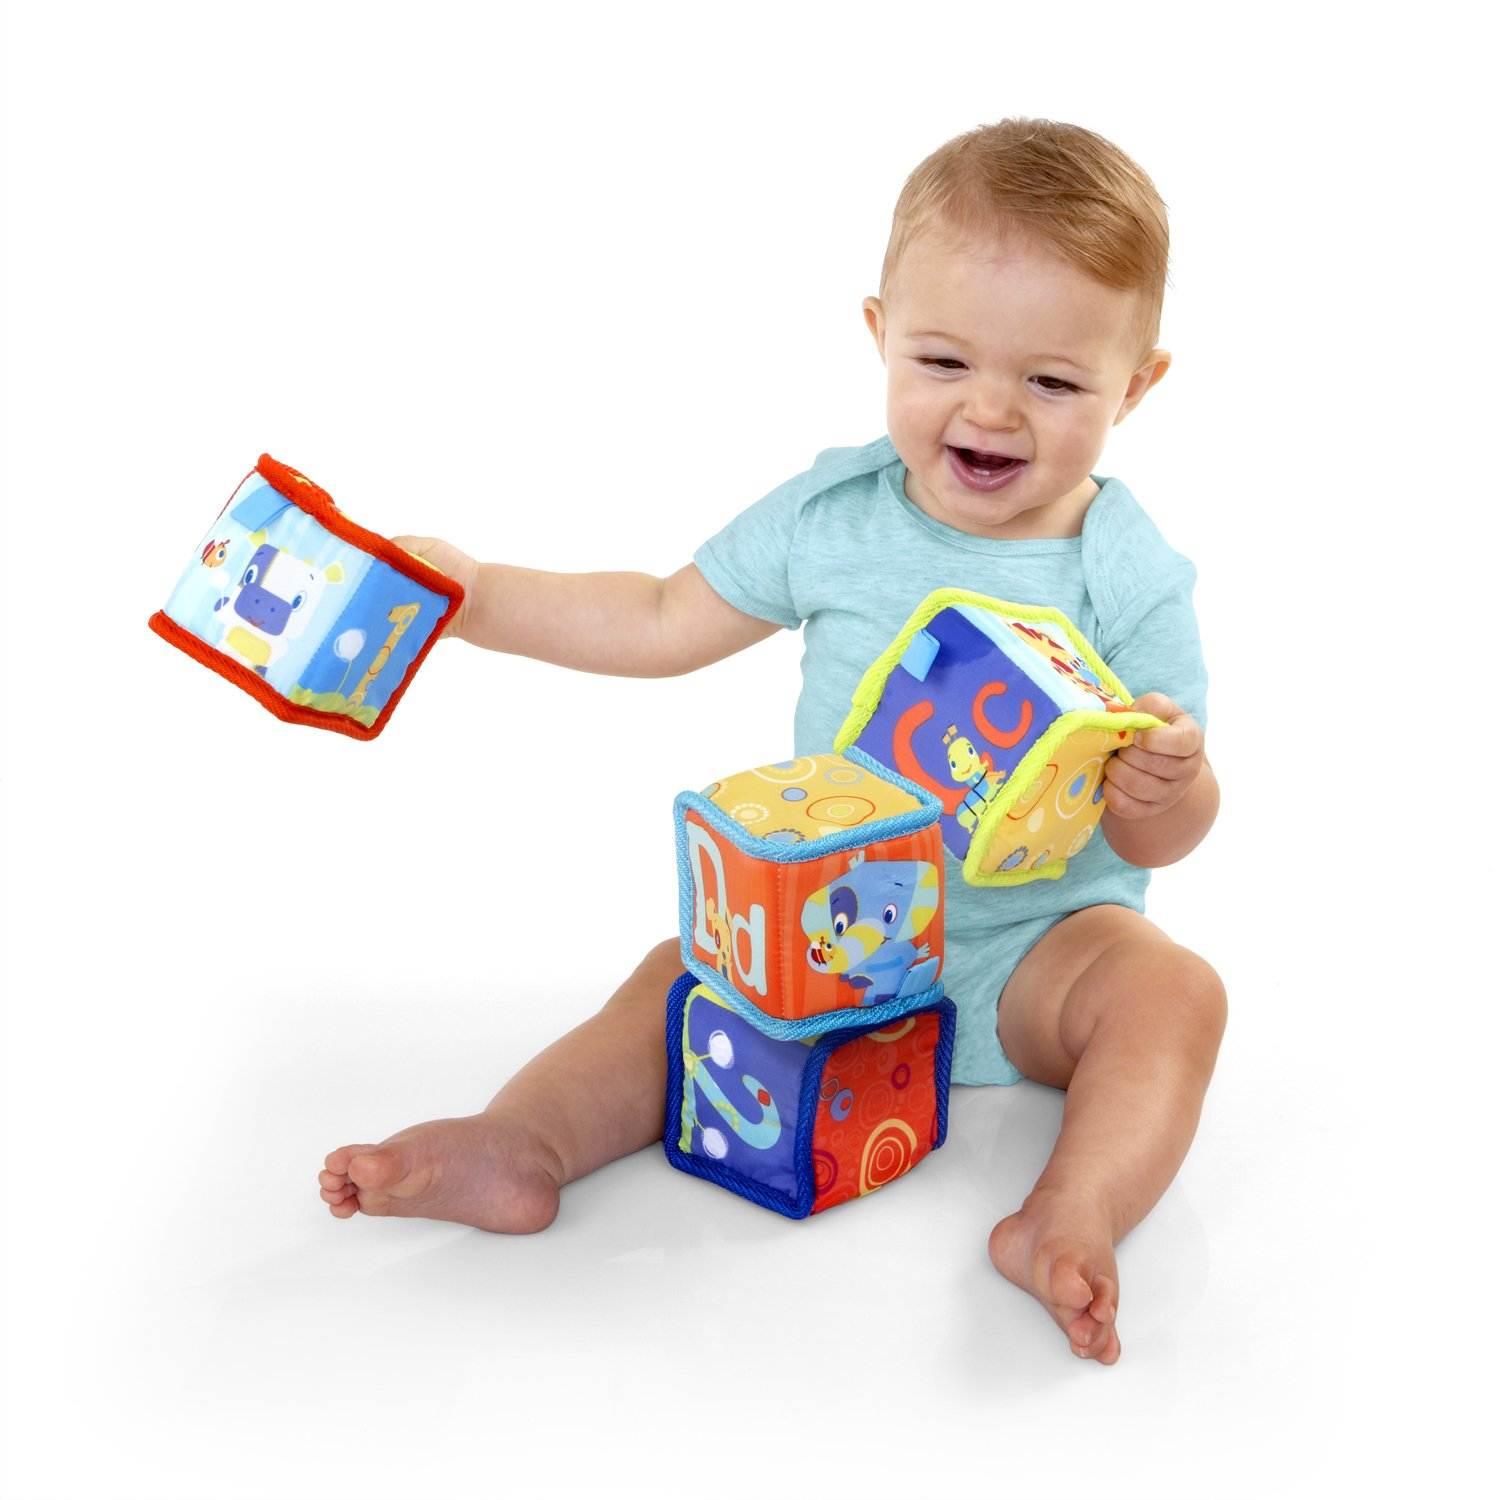 Unique Stacking Blocks for toddlers Pics